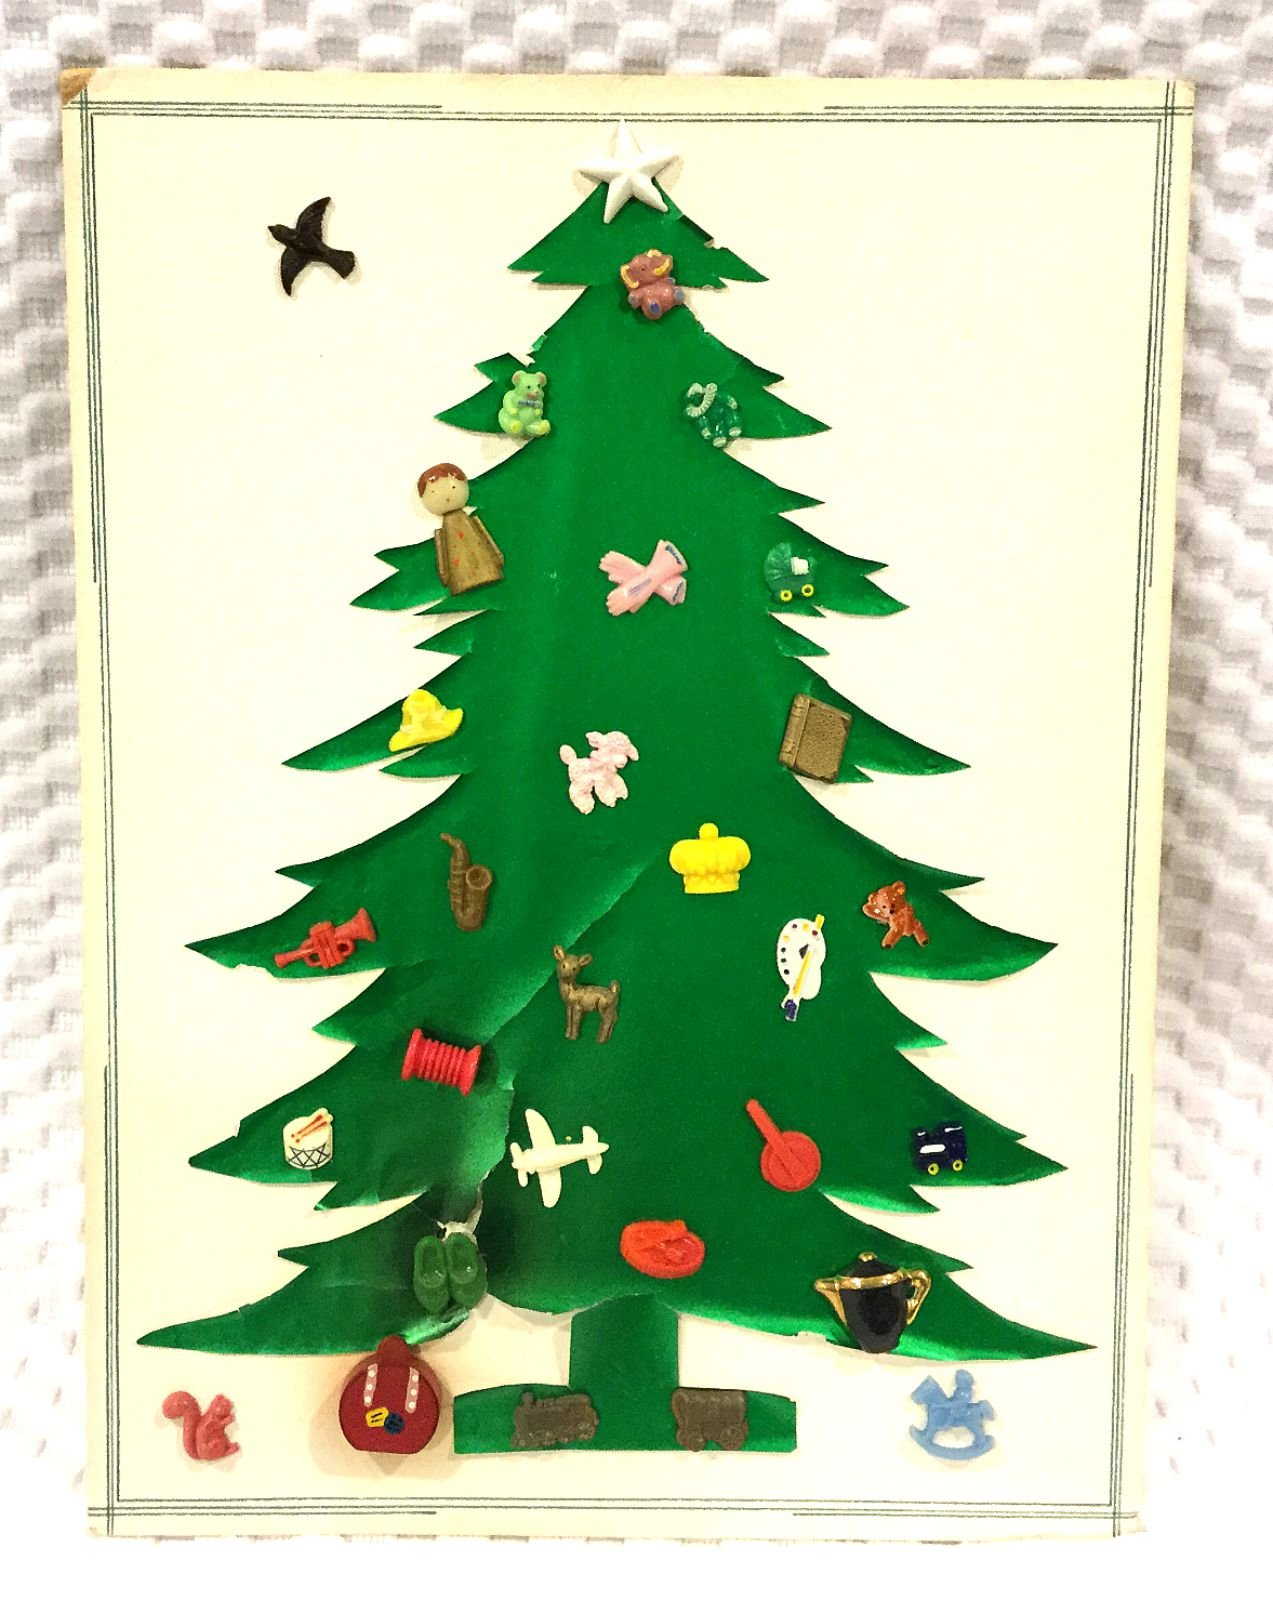 Vintage Christmas Tree Card 30 Realistic Plastic Bakelite Etc Sewing Buttons VBC2